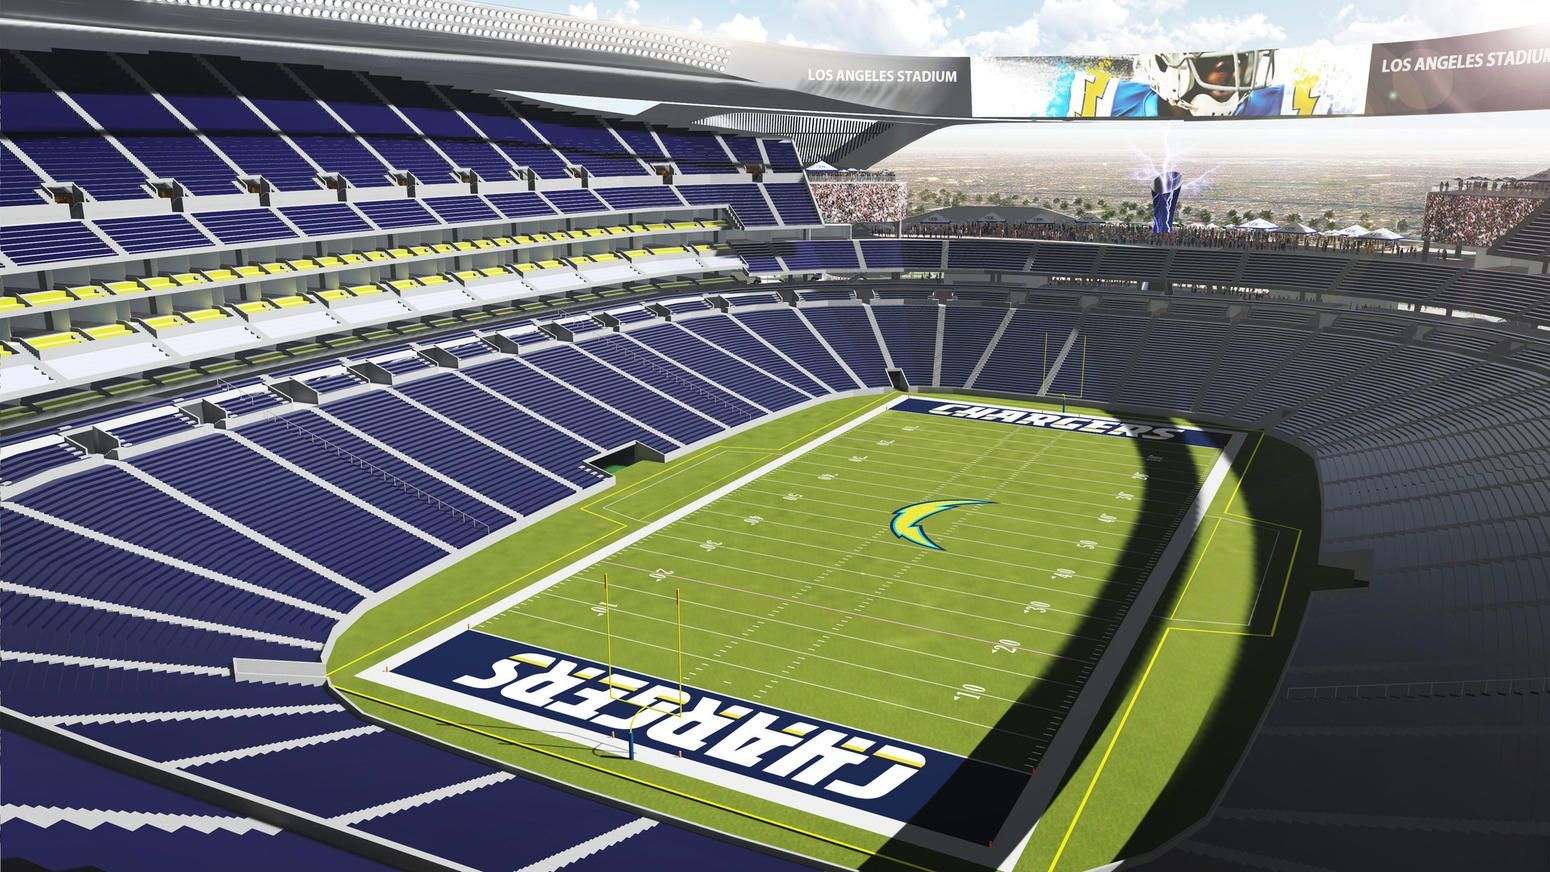 Nfl In L A Here Are Some Predictions For The Next Few Months Stadium Nfl Stadiums Sports Wallpapers